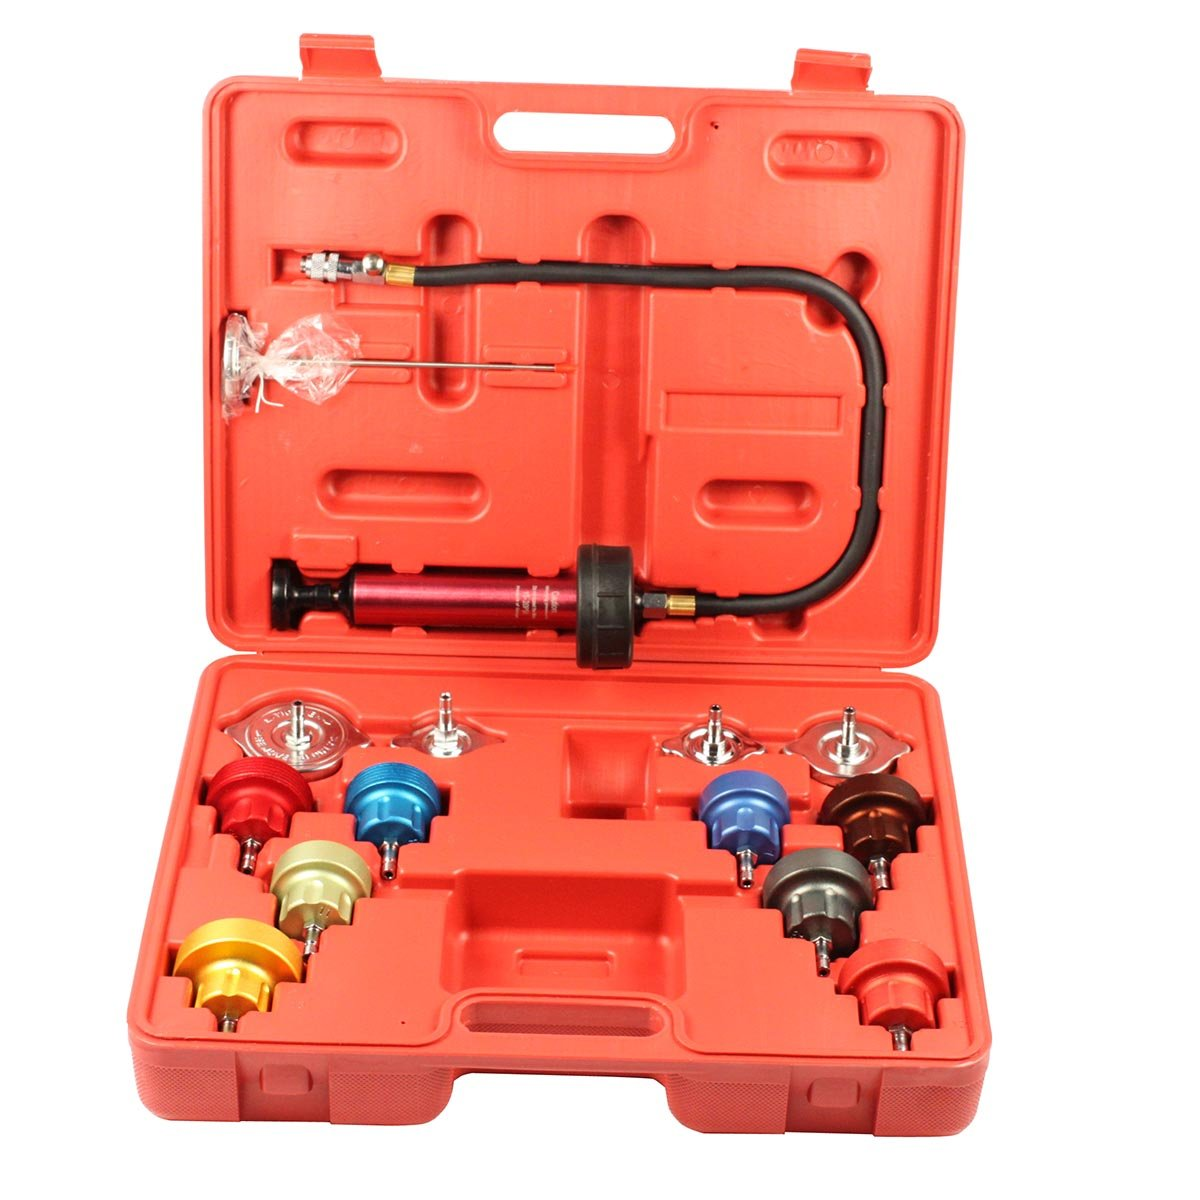 Qbace 14pc Radiator Pressure Test Kit